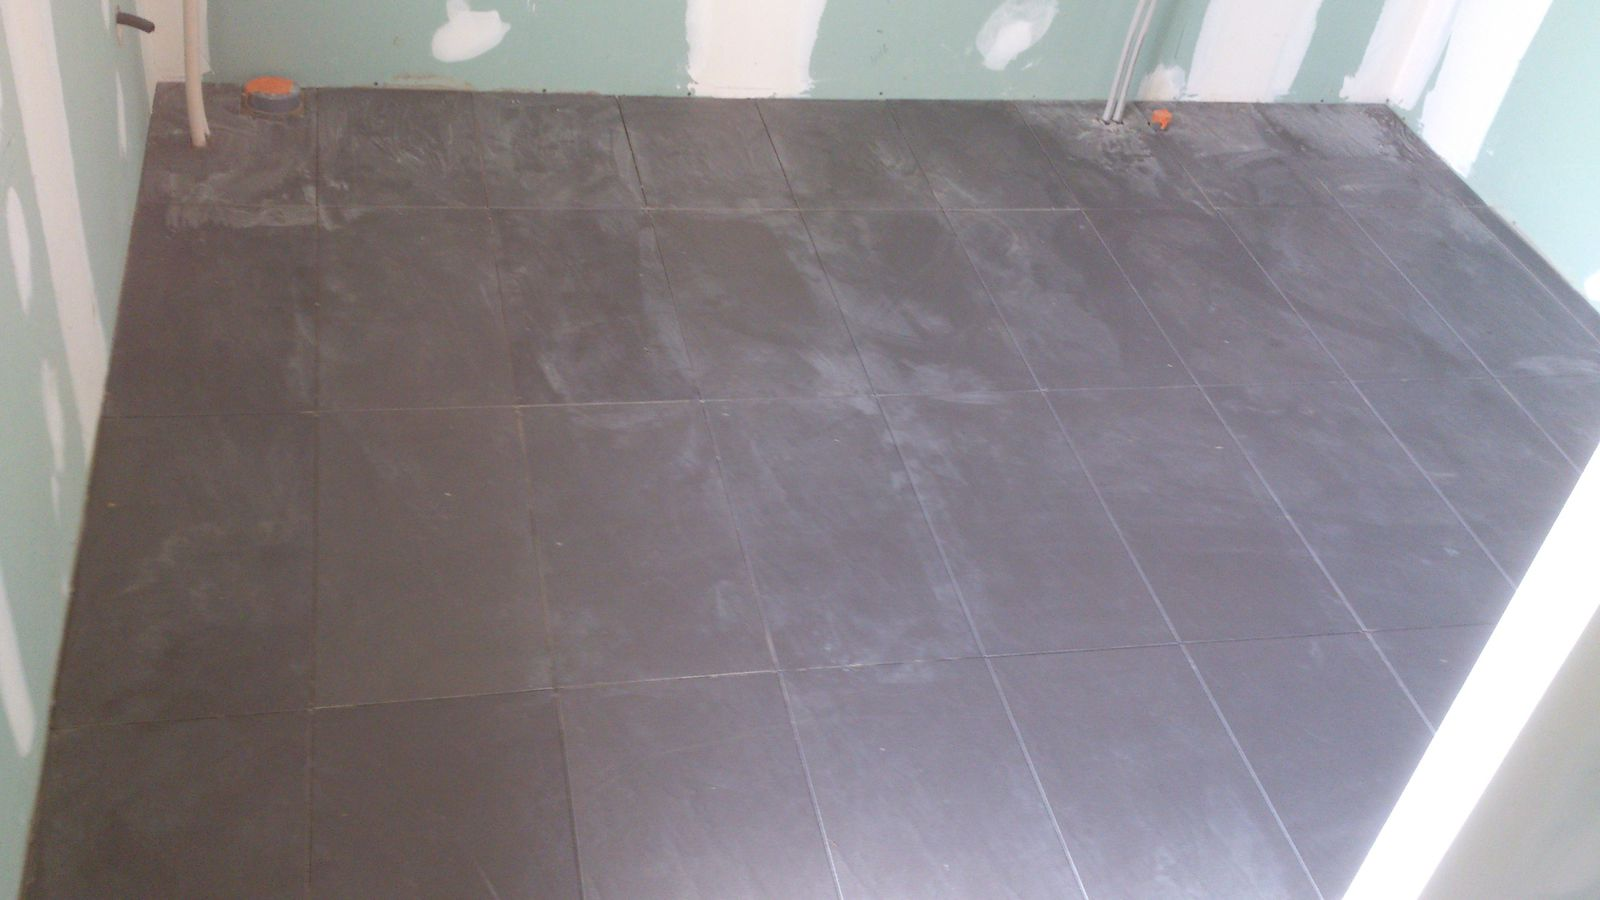 Renovation d 39 une fermette en bourgogne r novation d 39 une for Pose de joint de carrelage